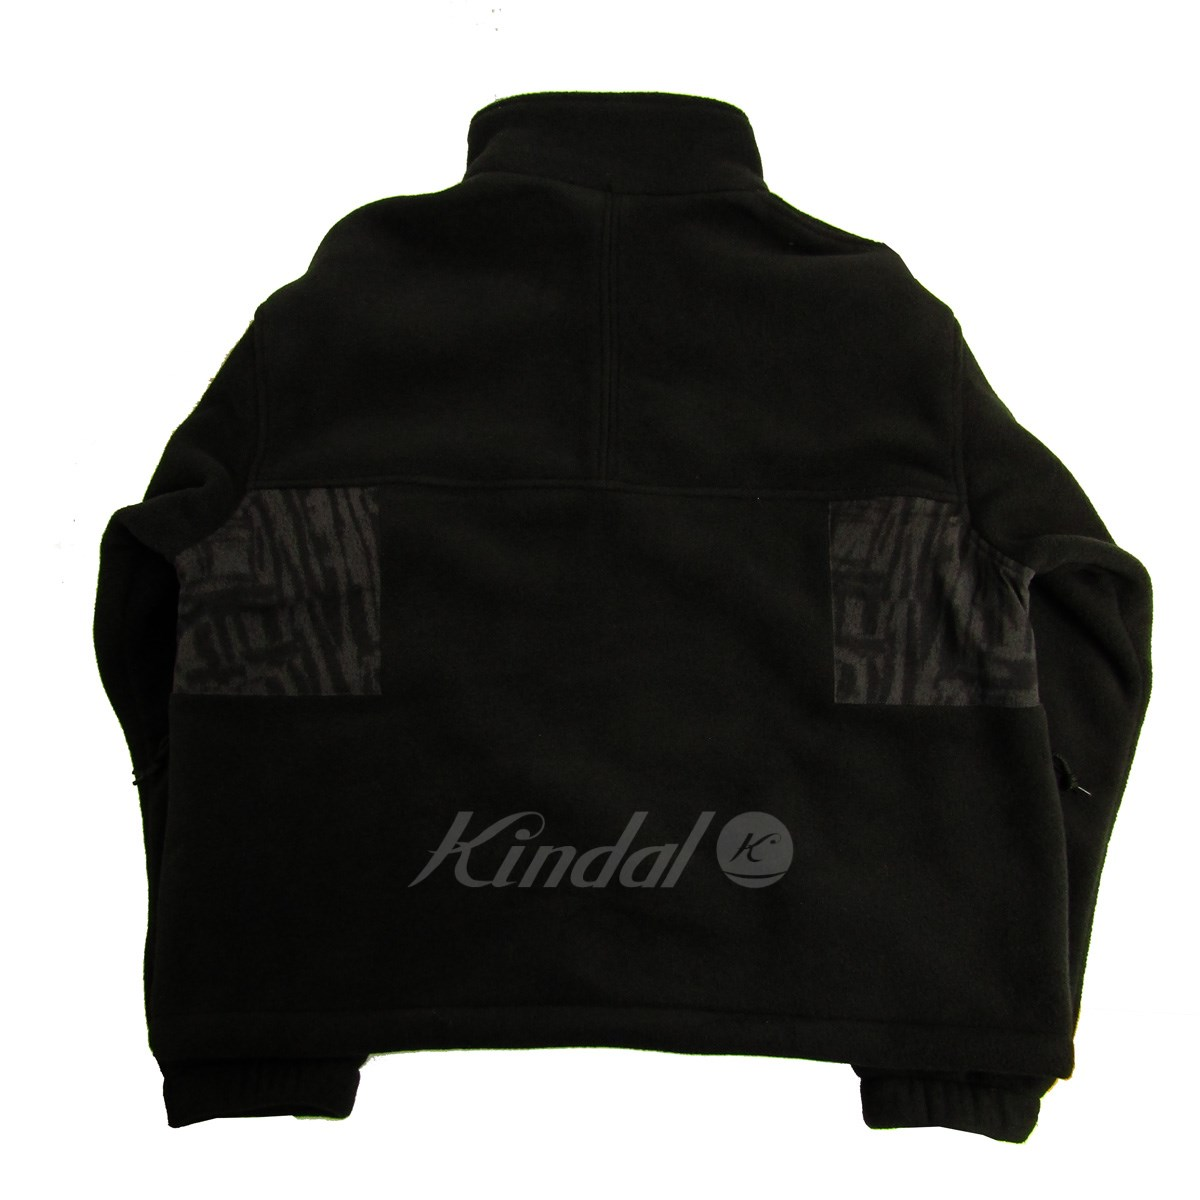 Nike Fleece Kinder Nike Acg 2019ss Micro Fleece Jacket Bq7198 010 Black Size L ナイキエーシージー